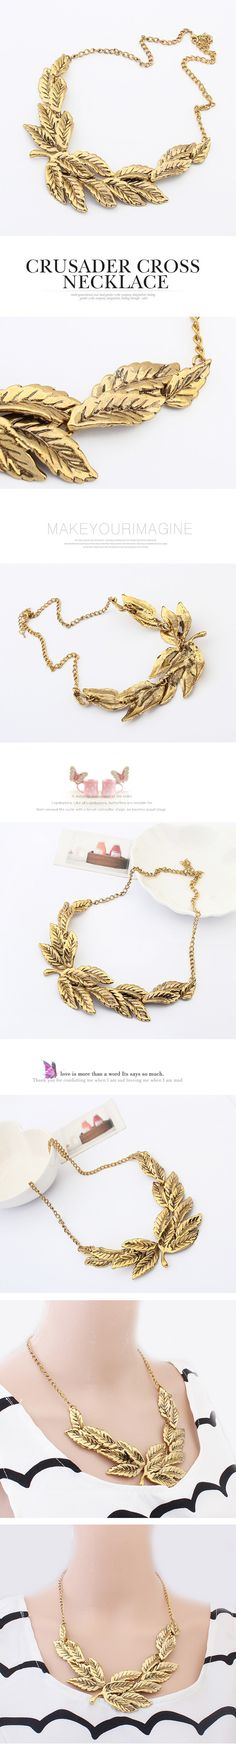 Cool Gold Maple Leaf Short bib necklace [naidi7016] - $4.54 : Fashion jewelry promotion store,Supply all kinds of cheap fashion jewelry